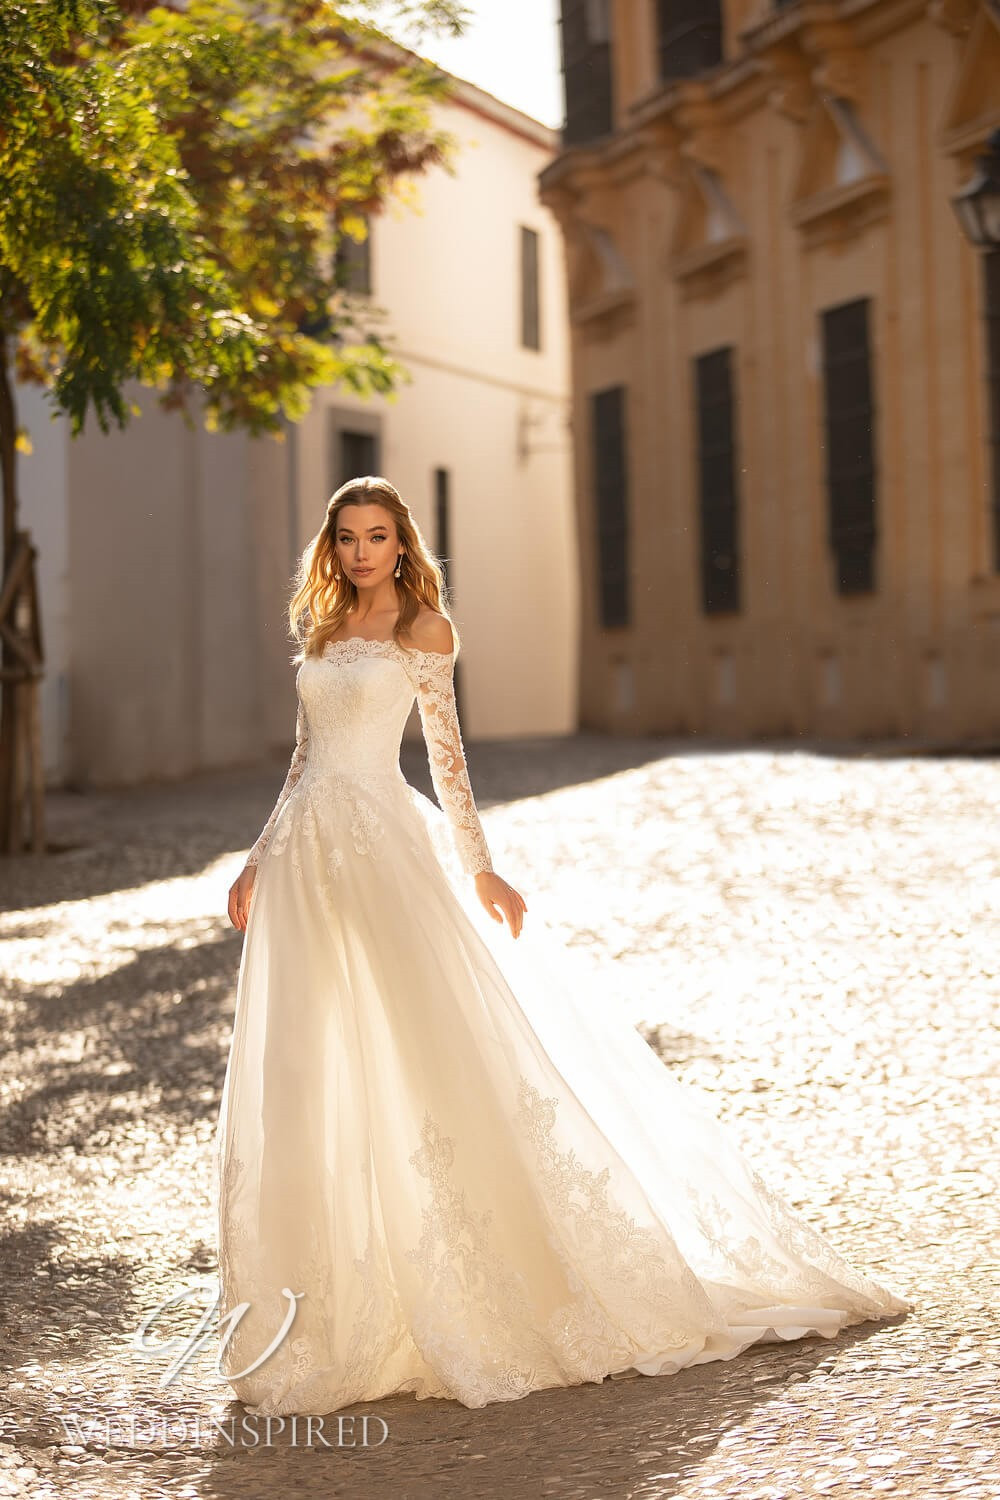 An Essential by Lussano 2021 lace off the shoulder A-line wedding dress with long sleeves